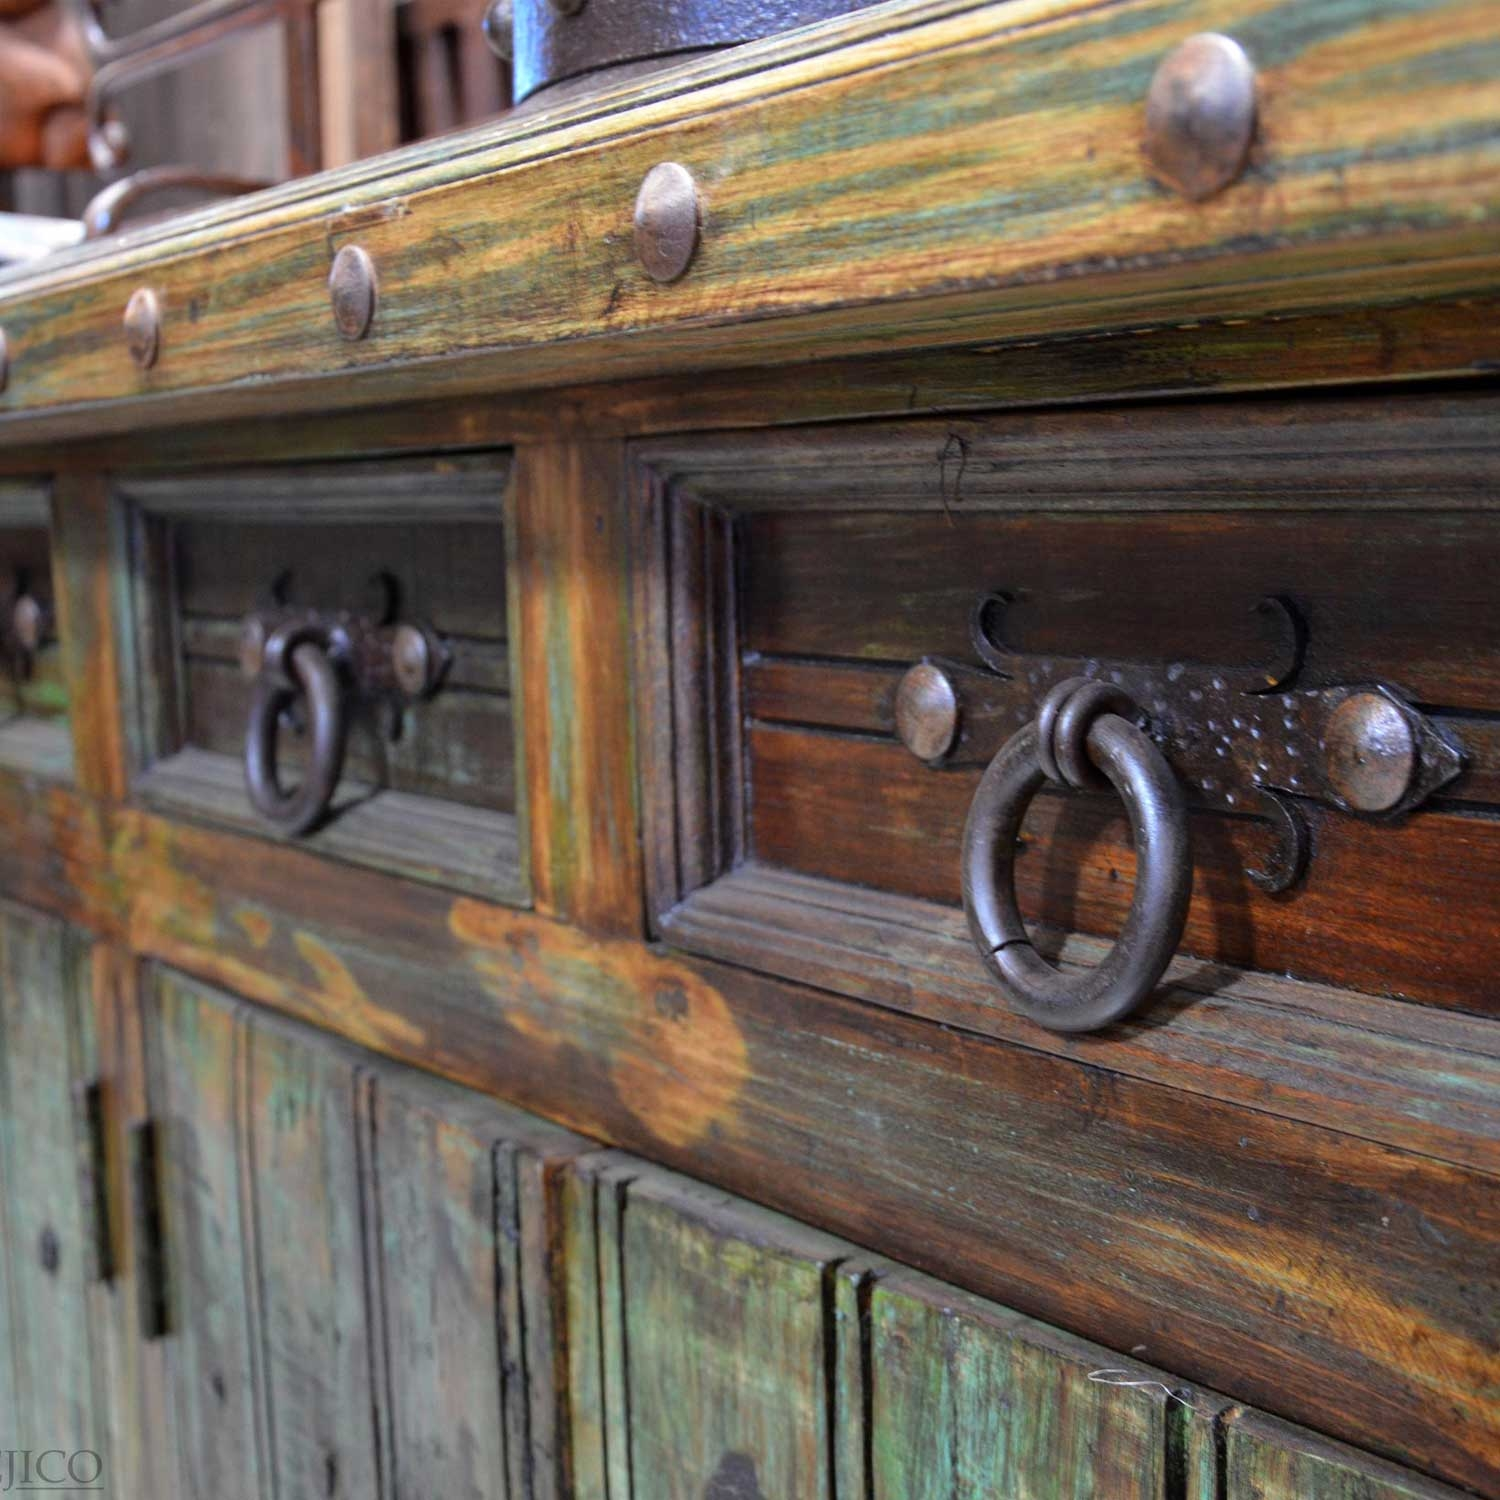 Rustic Kitchen Cabinet Hardware Pulls